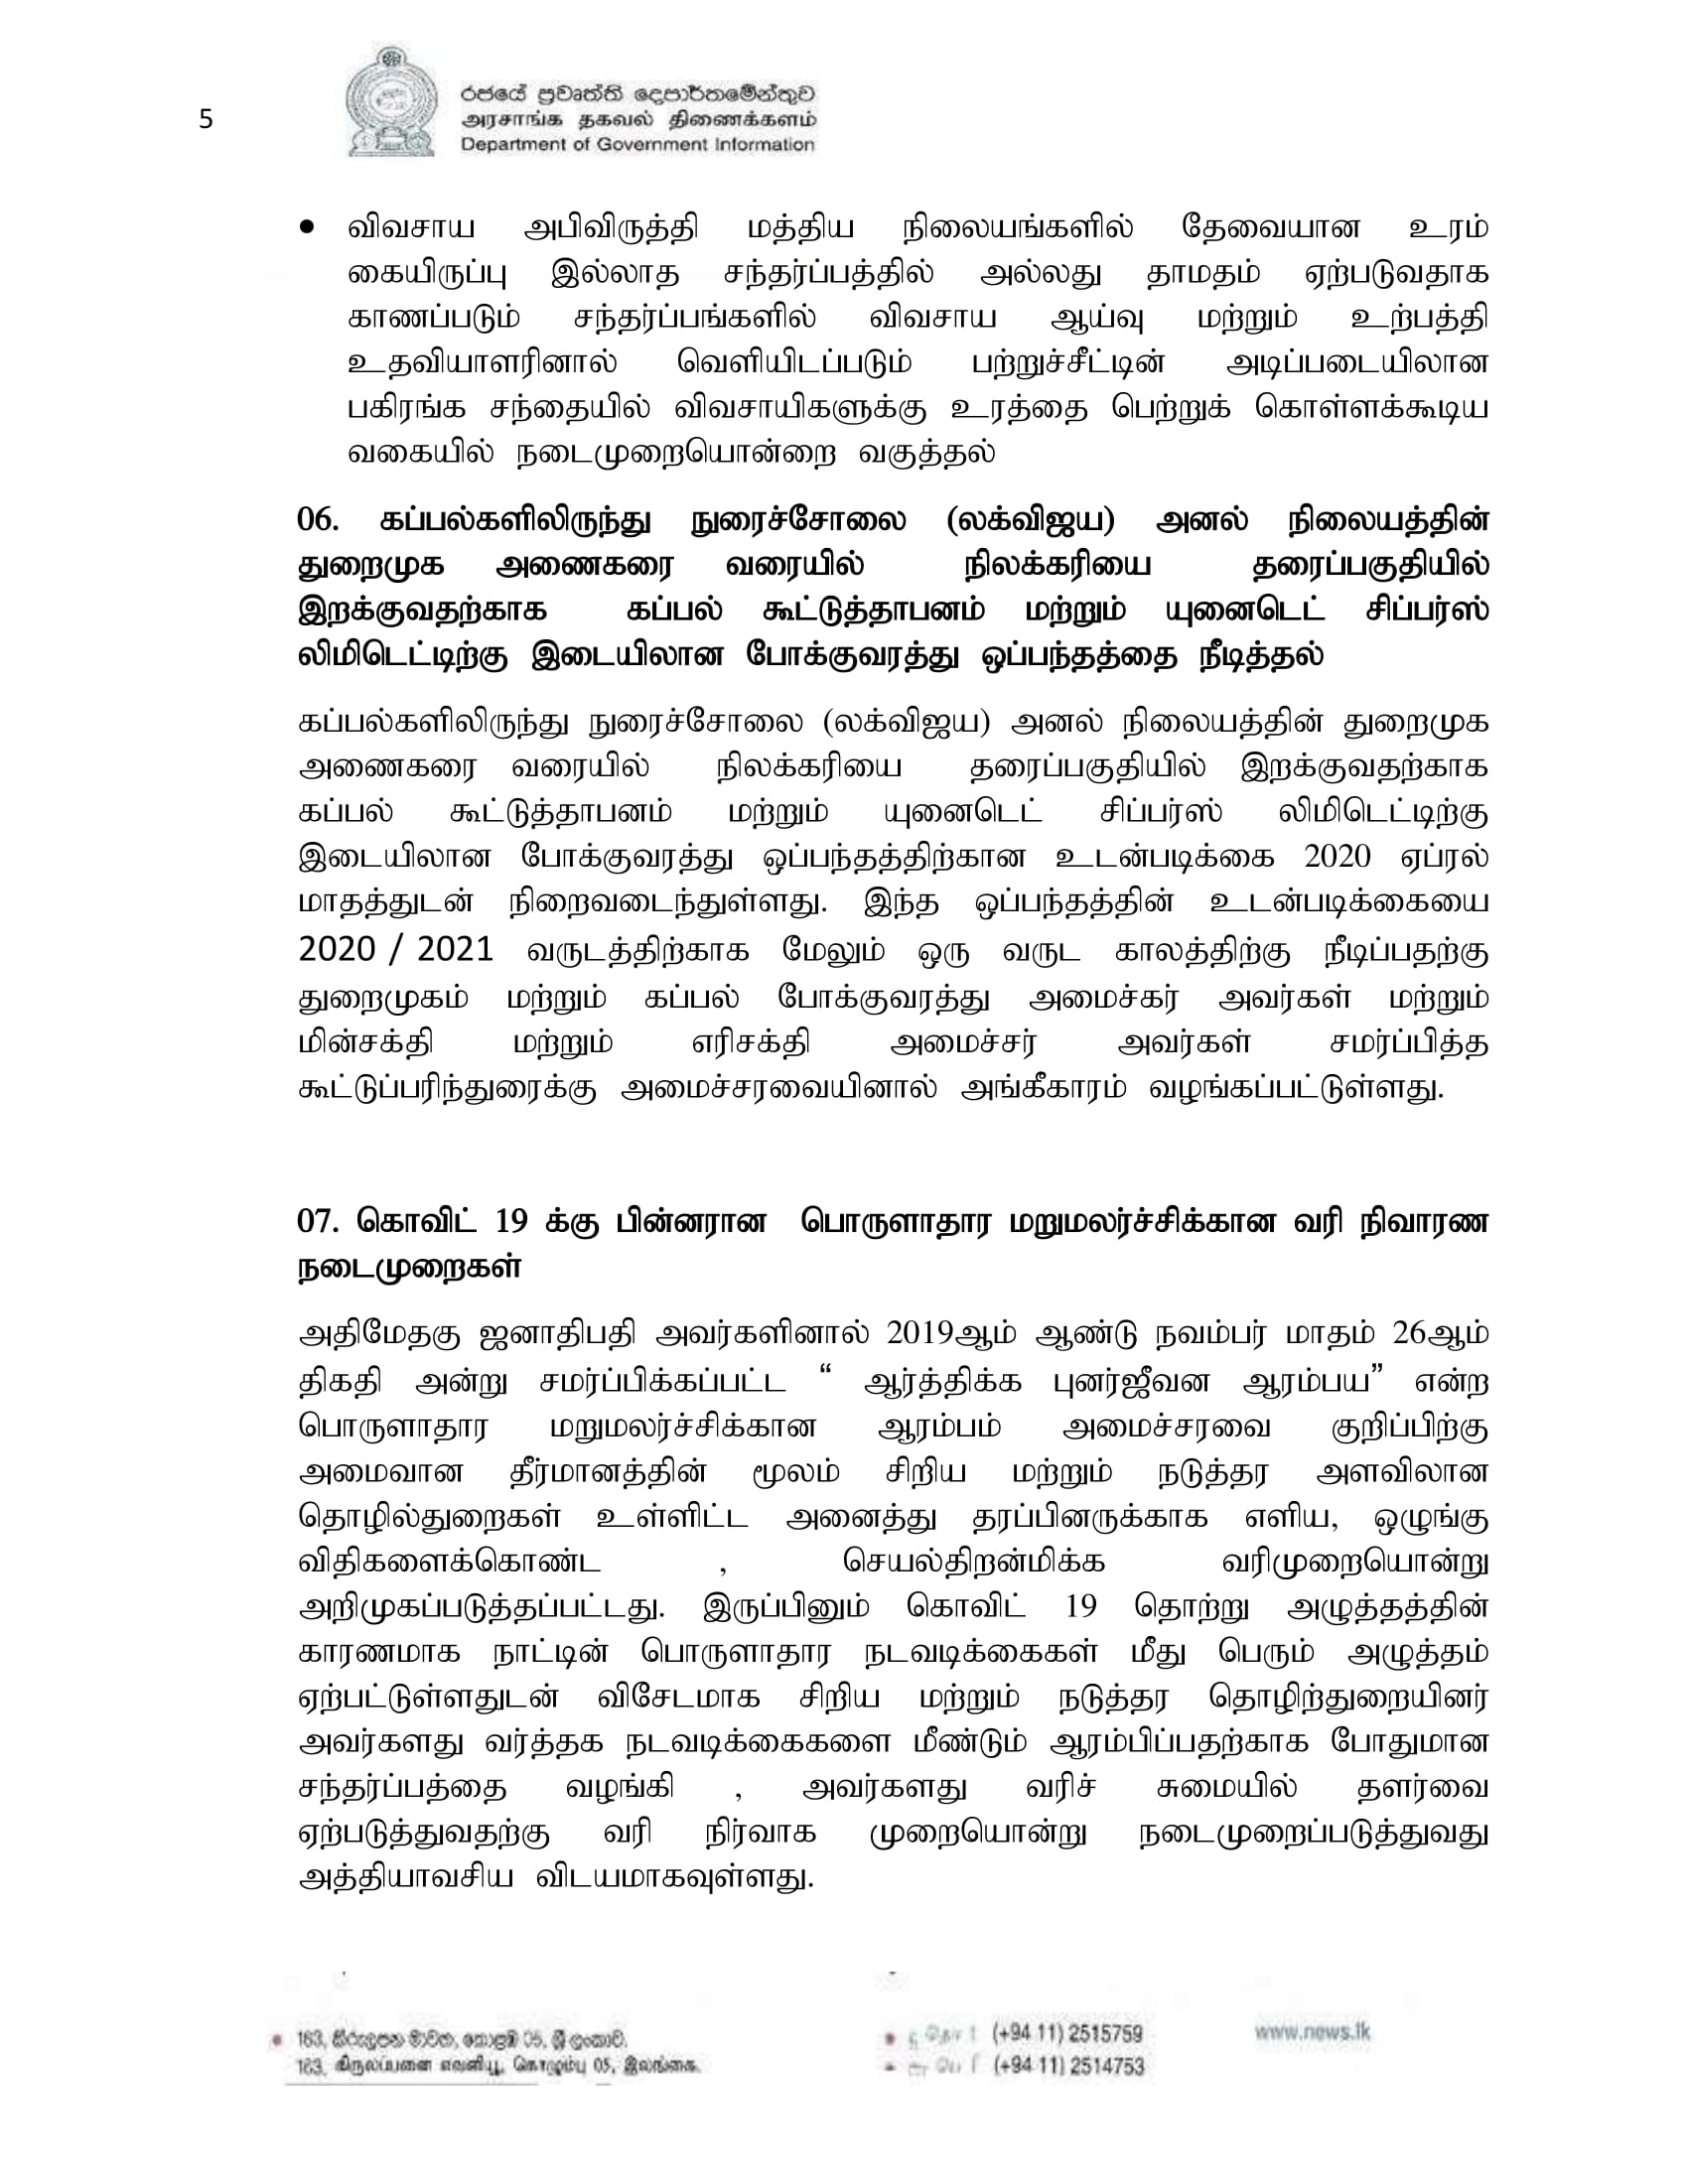 2020.06.24 Cabinet Tamil 1 1 5